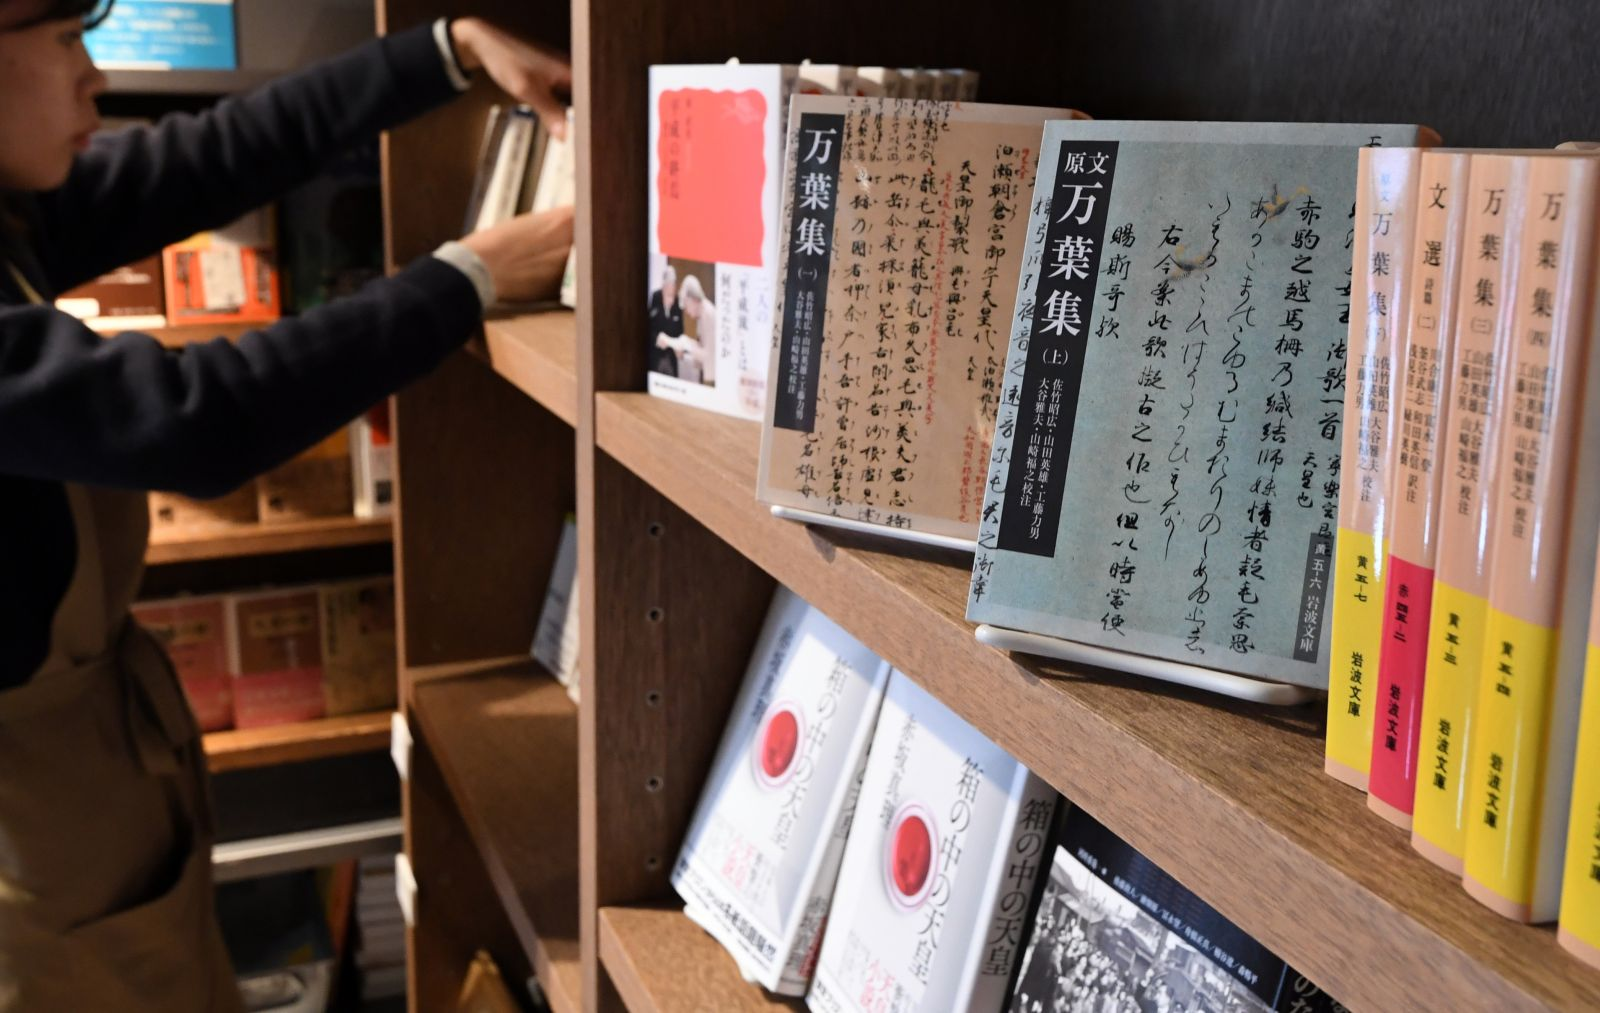 Reiwa Japan Jimbocho Bookstore Haven for Booklovers 009